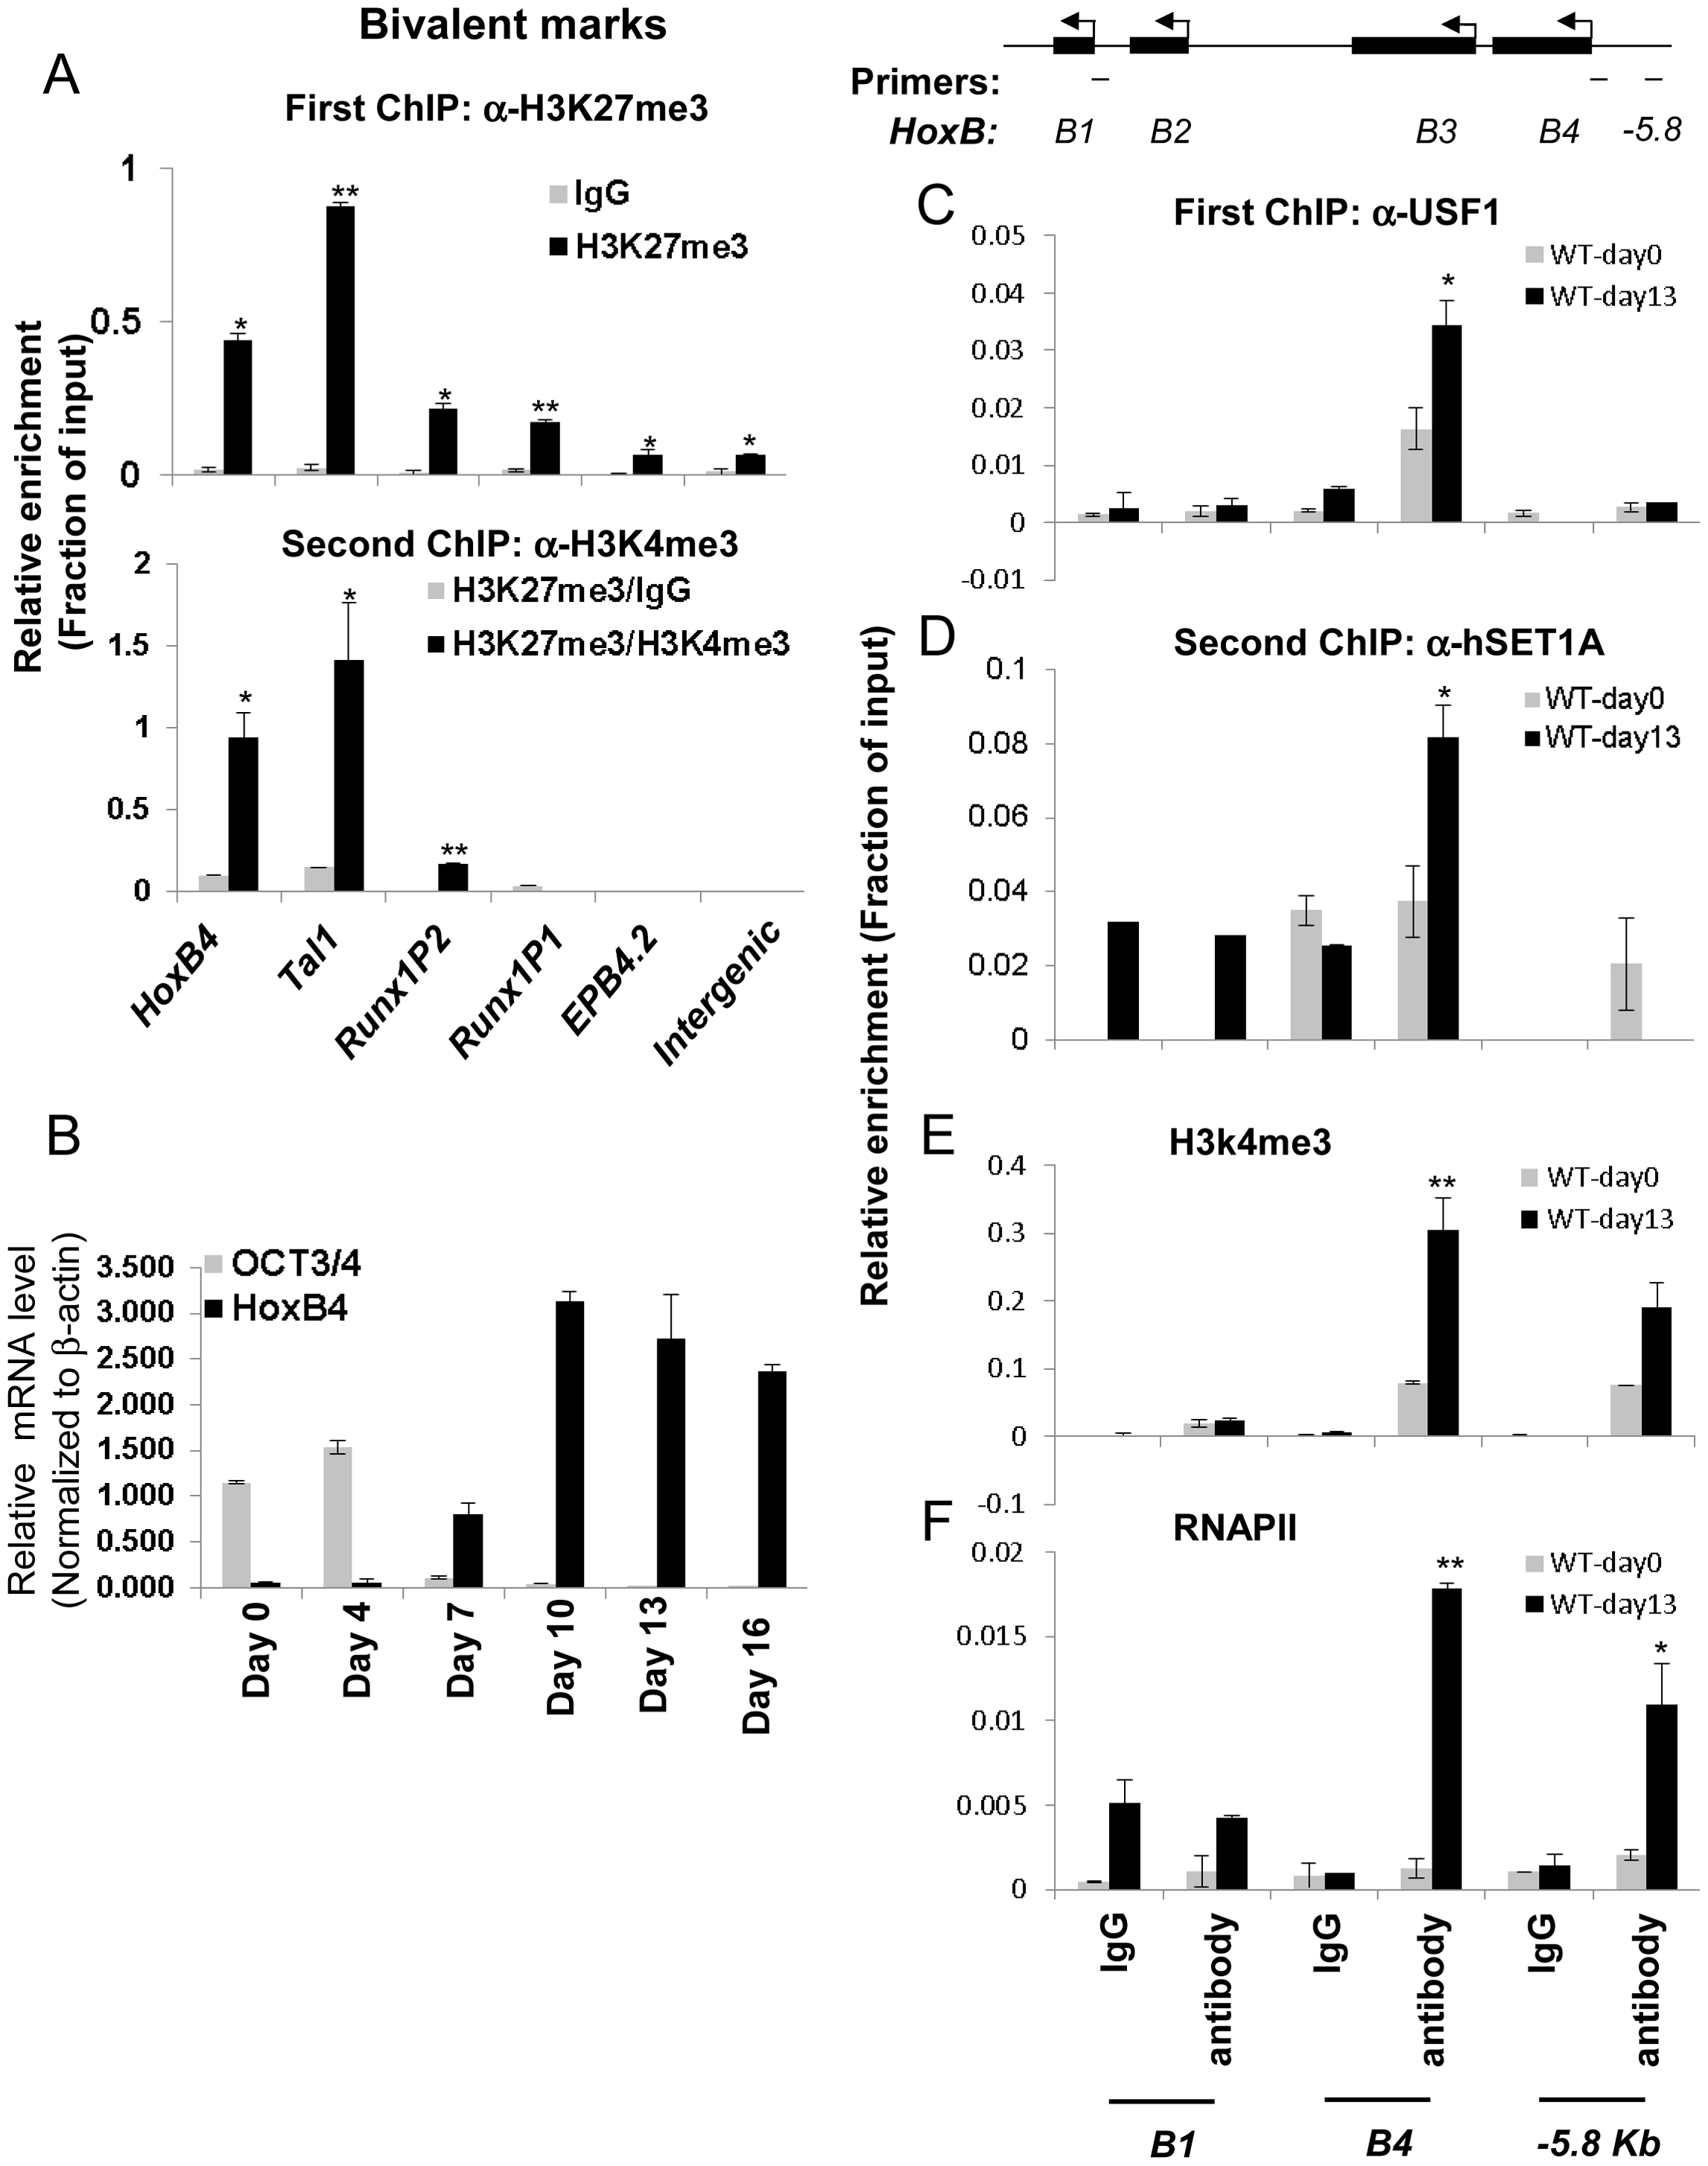 Co-localization of USF1 and the hSET1A complex correlates with the activation of the HSC-specific <i>HoxB4</i> gene during hematopoietic differentiation of ESCs.